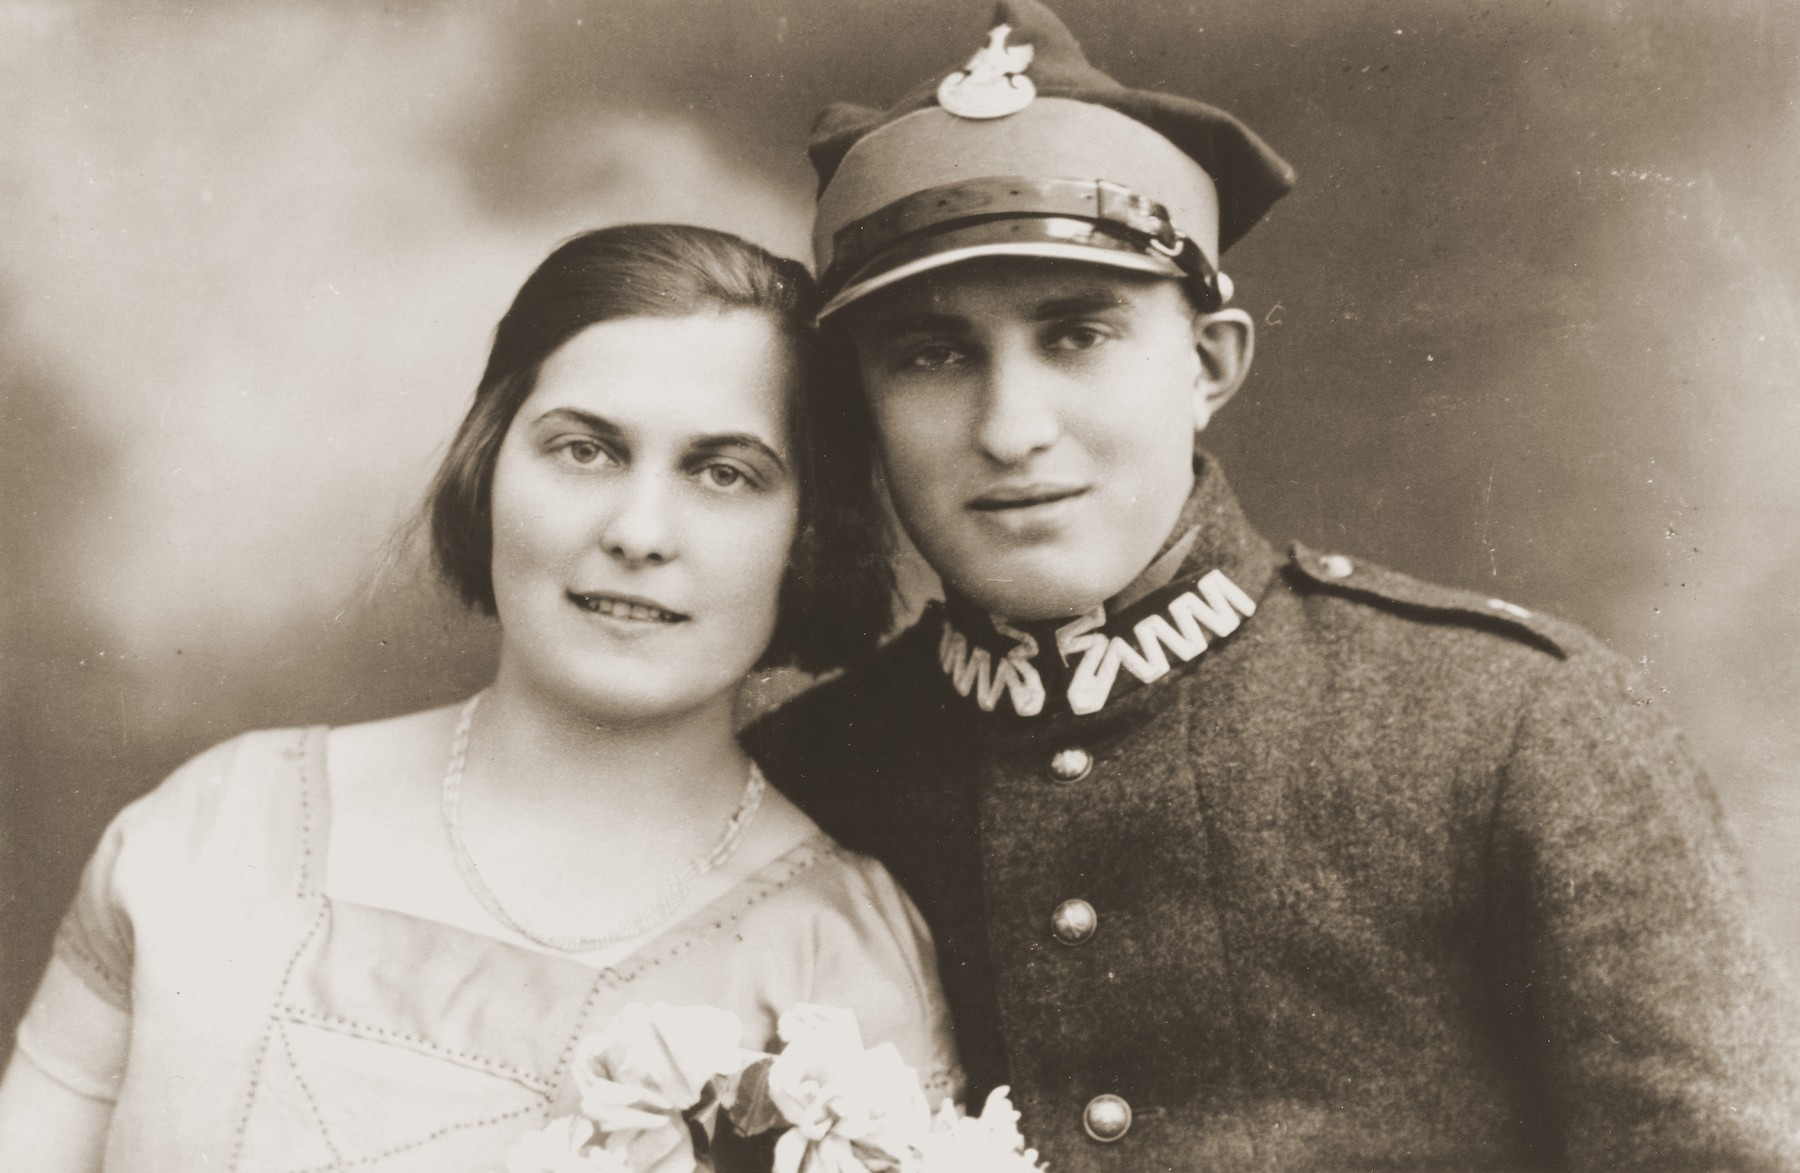 Studio portrait of two Jewish siblings in Zarki.  Pictured are Tola and Moszek Broda.  Moszek is in the uniform of the Polish army.